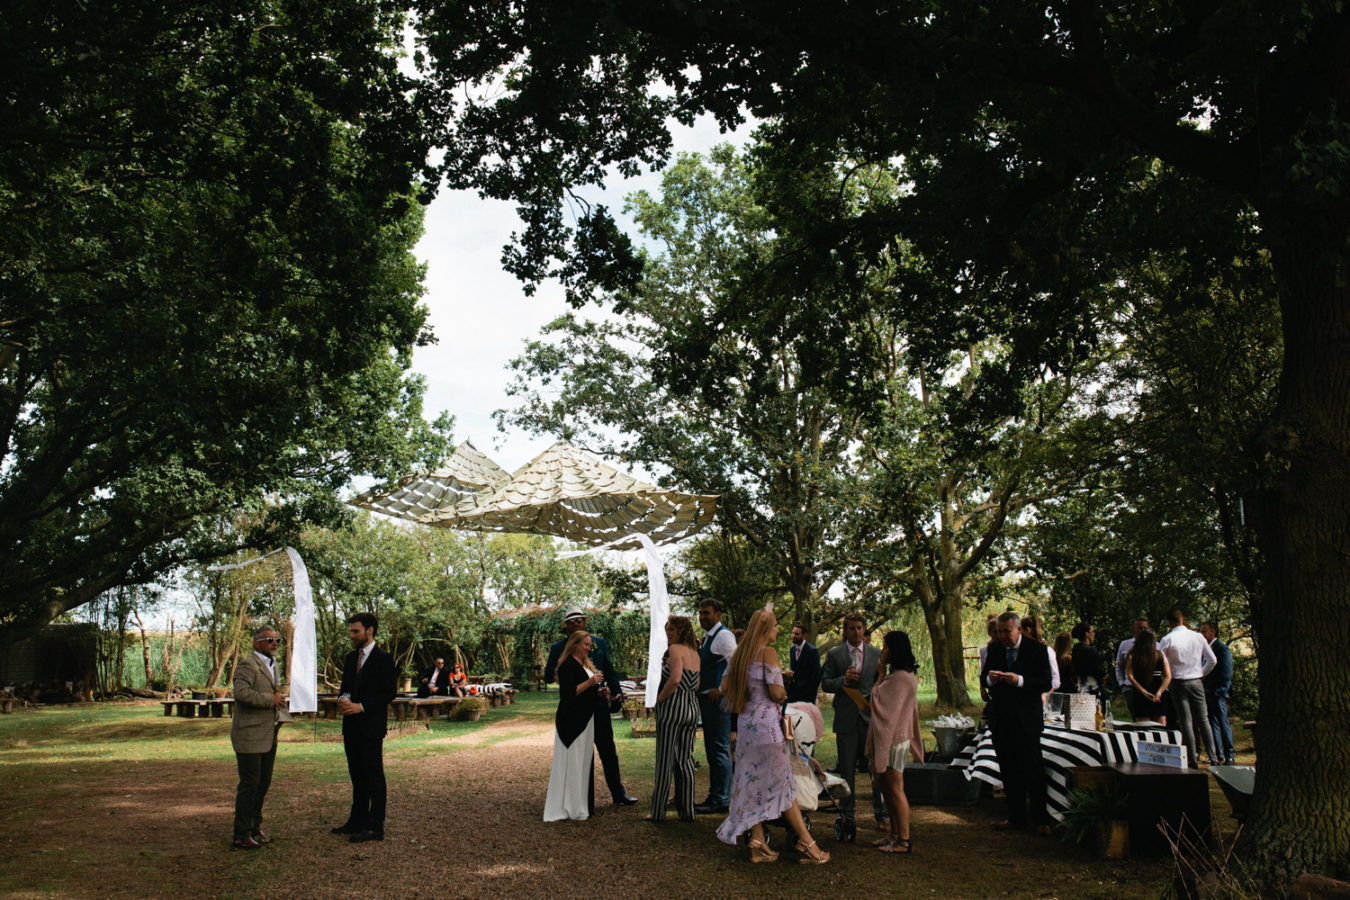 Wedding guests shelter from the sun under a parachute hung from the trees at The Oak Grove wedding venue